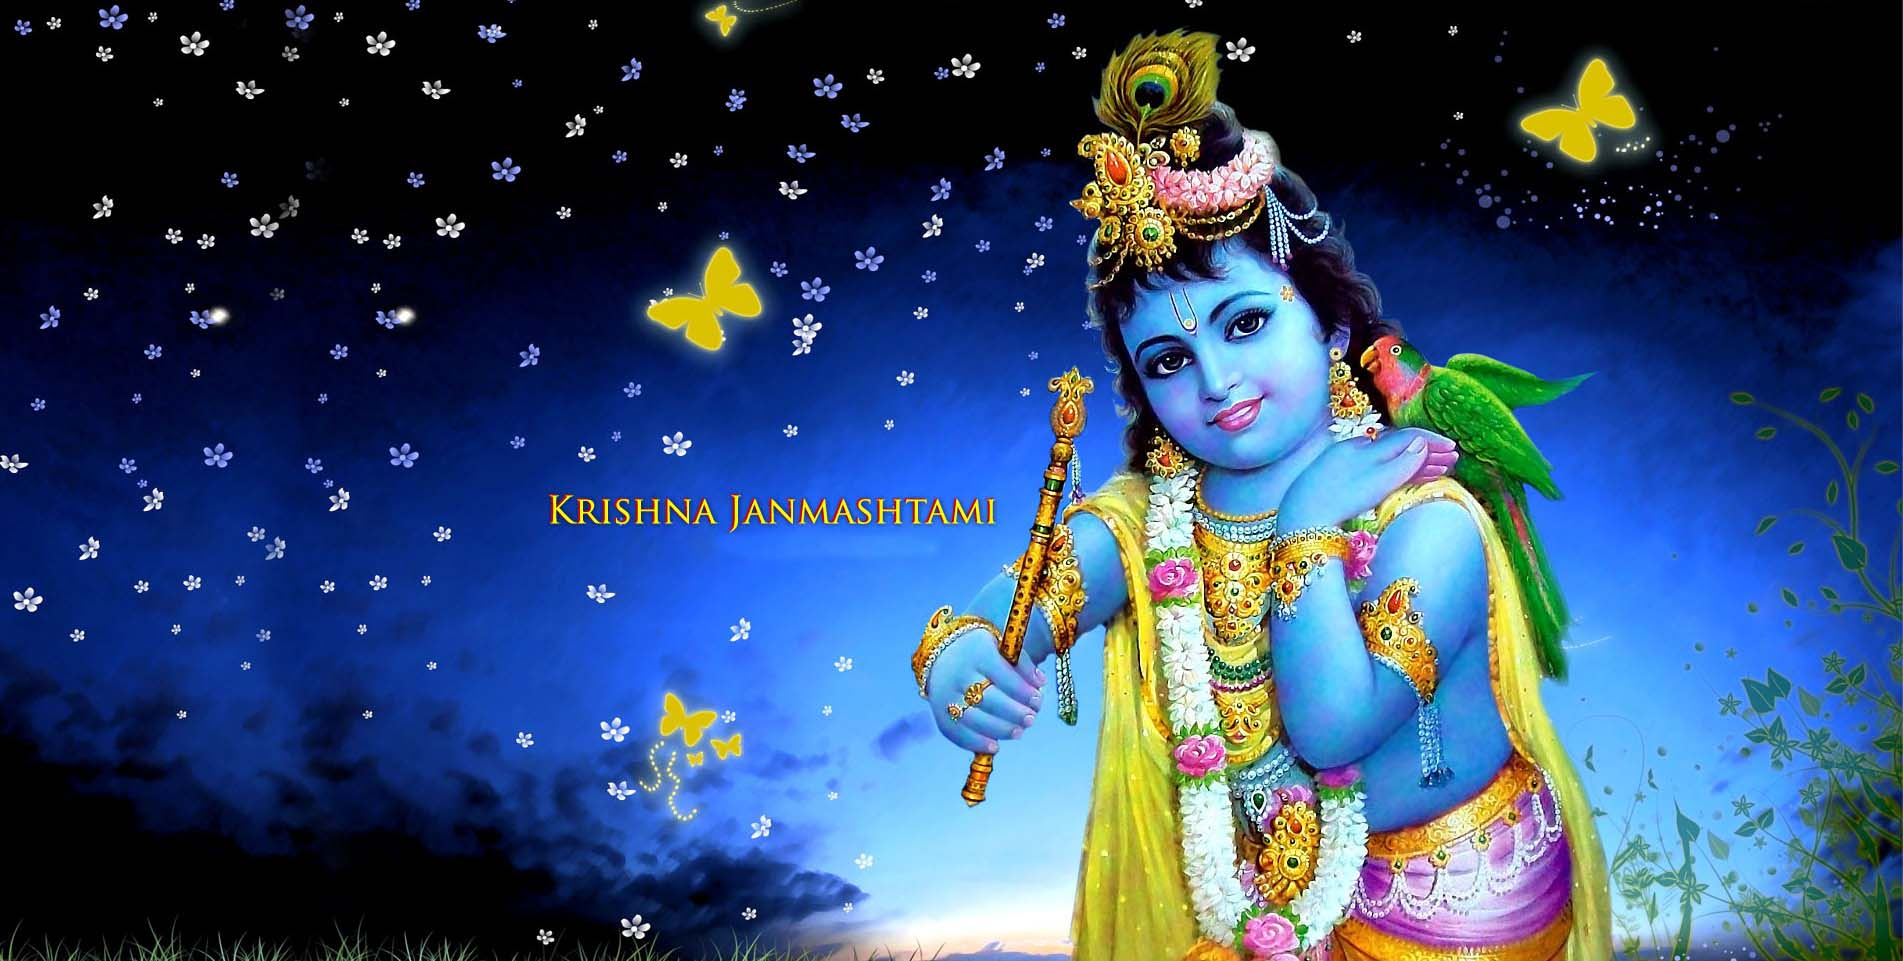 Sri Krishna Janmashtami 2017 Image with Quotes, Whatsapp DP's